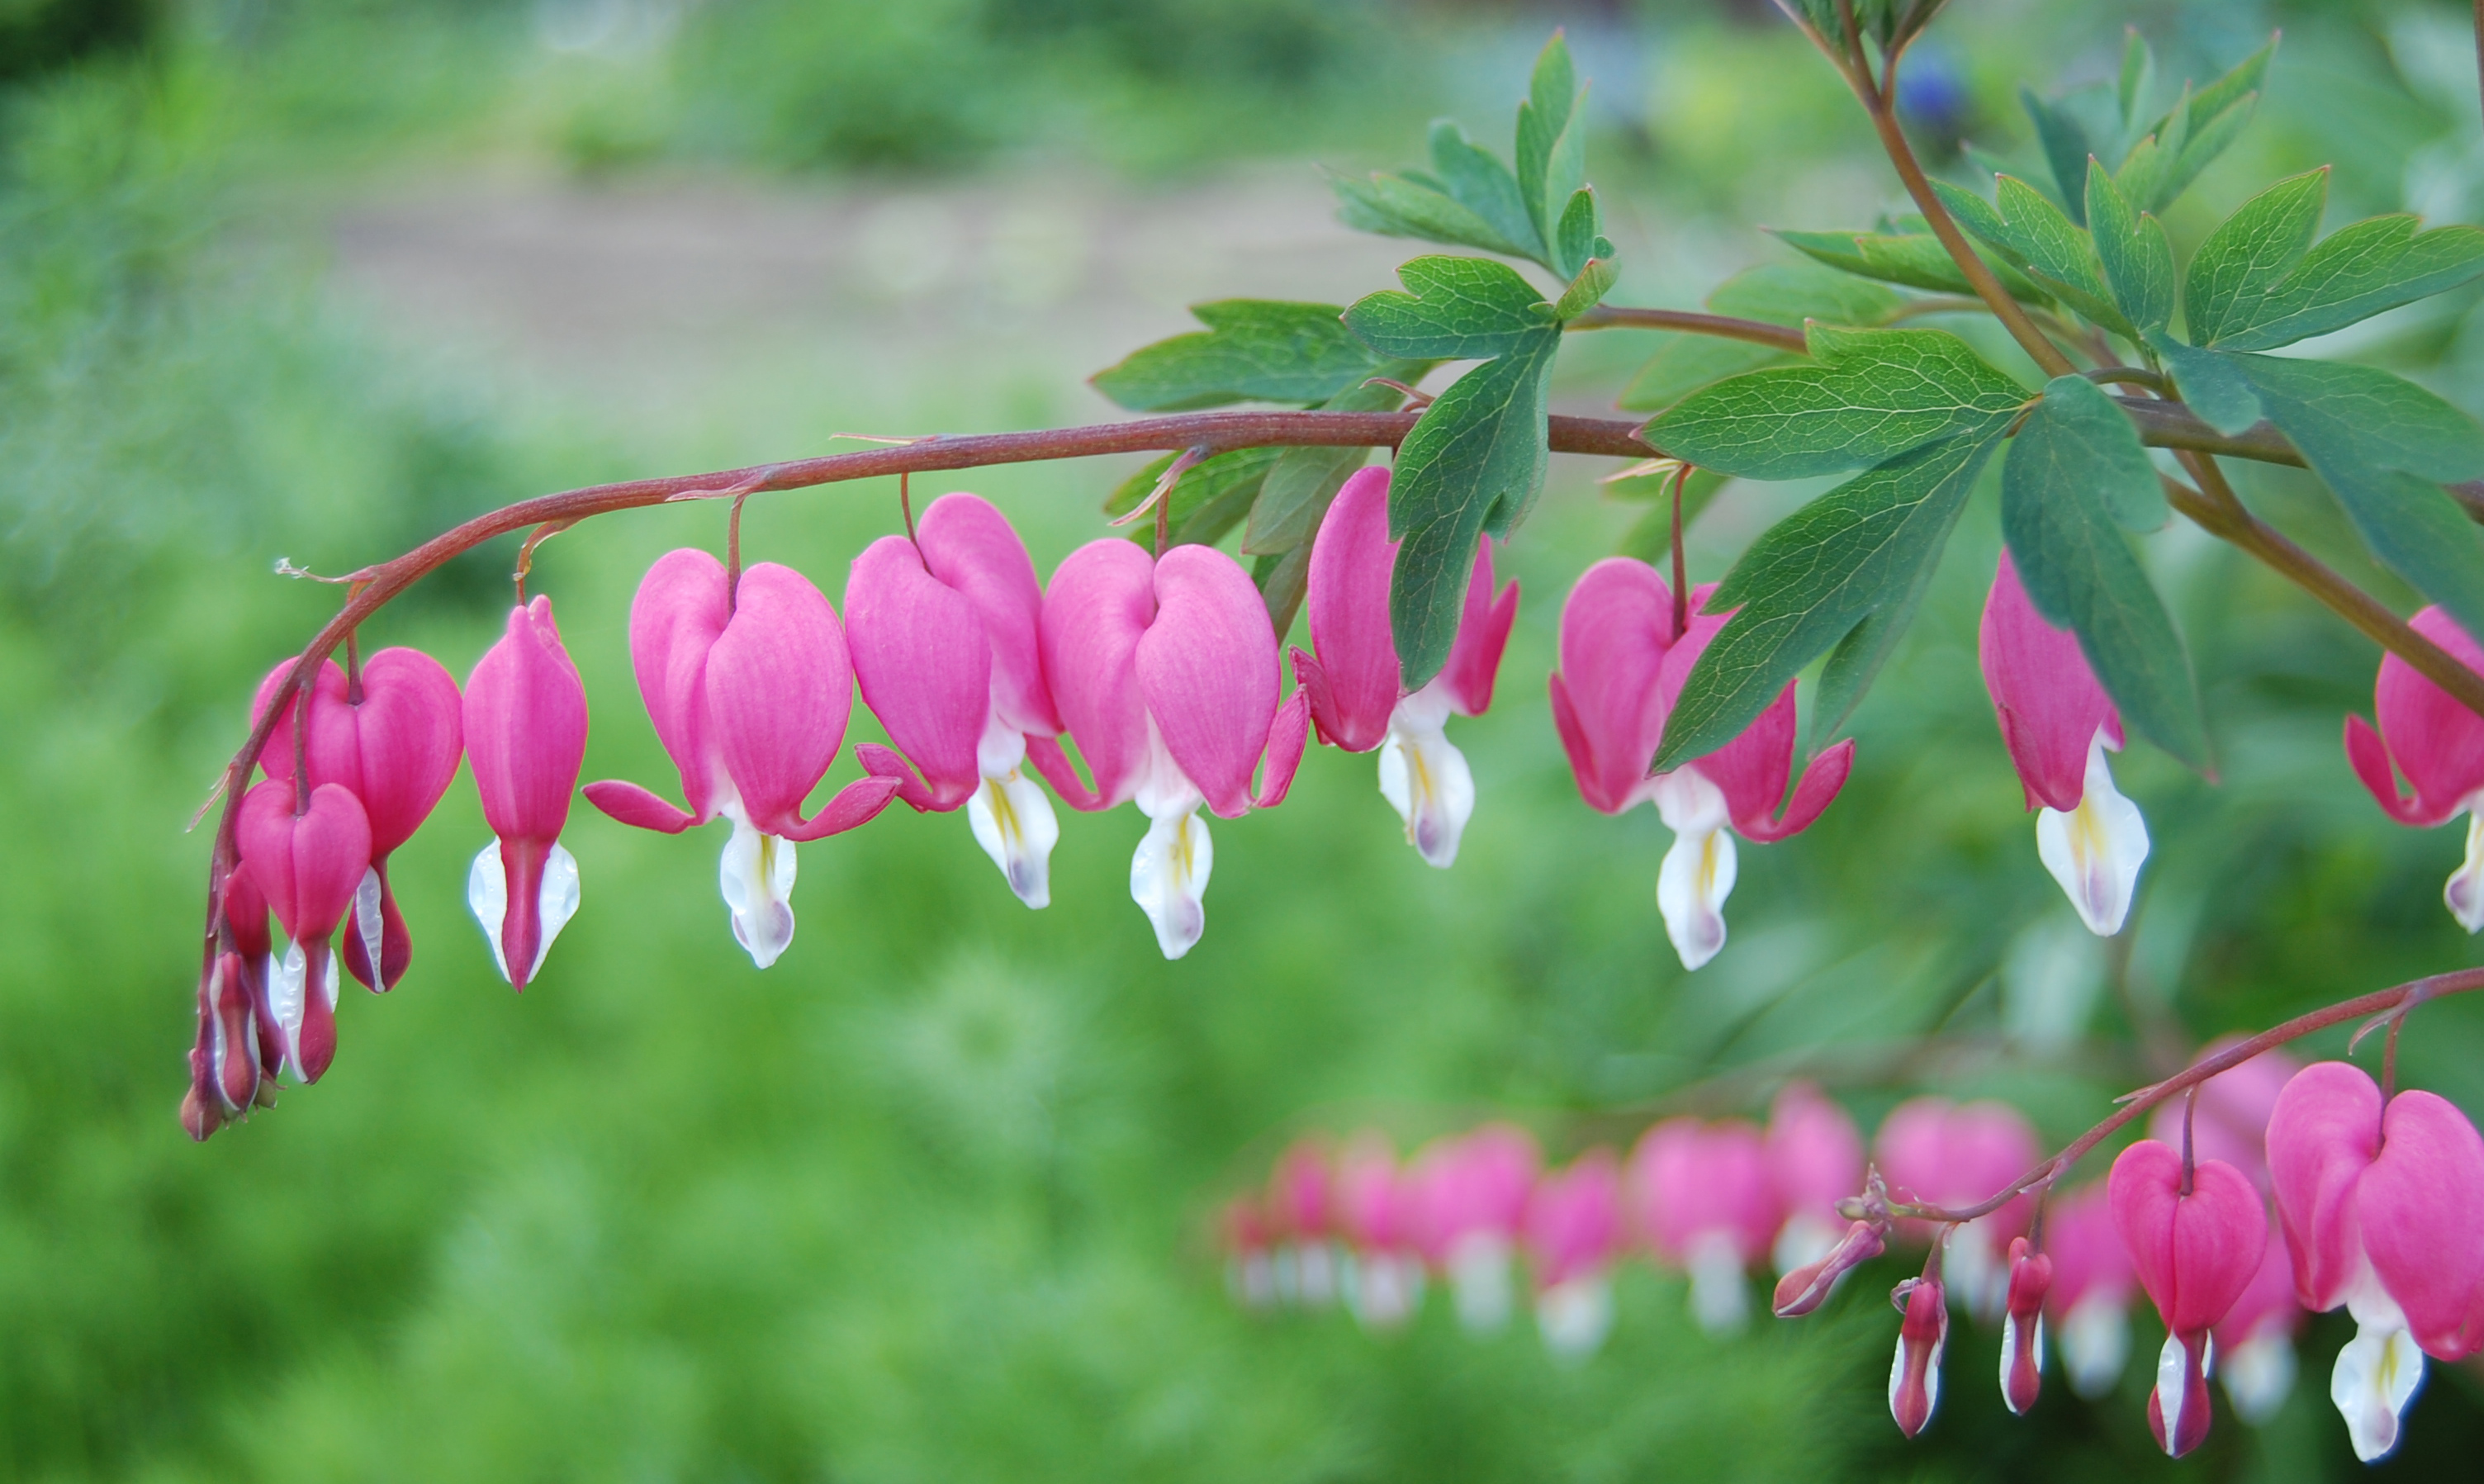 File:Dicentra-spectabilis.jpg - Wikipedia, the free encyclopedia